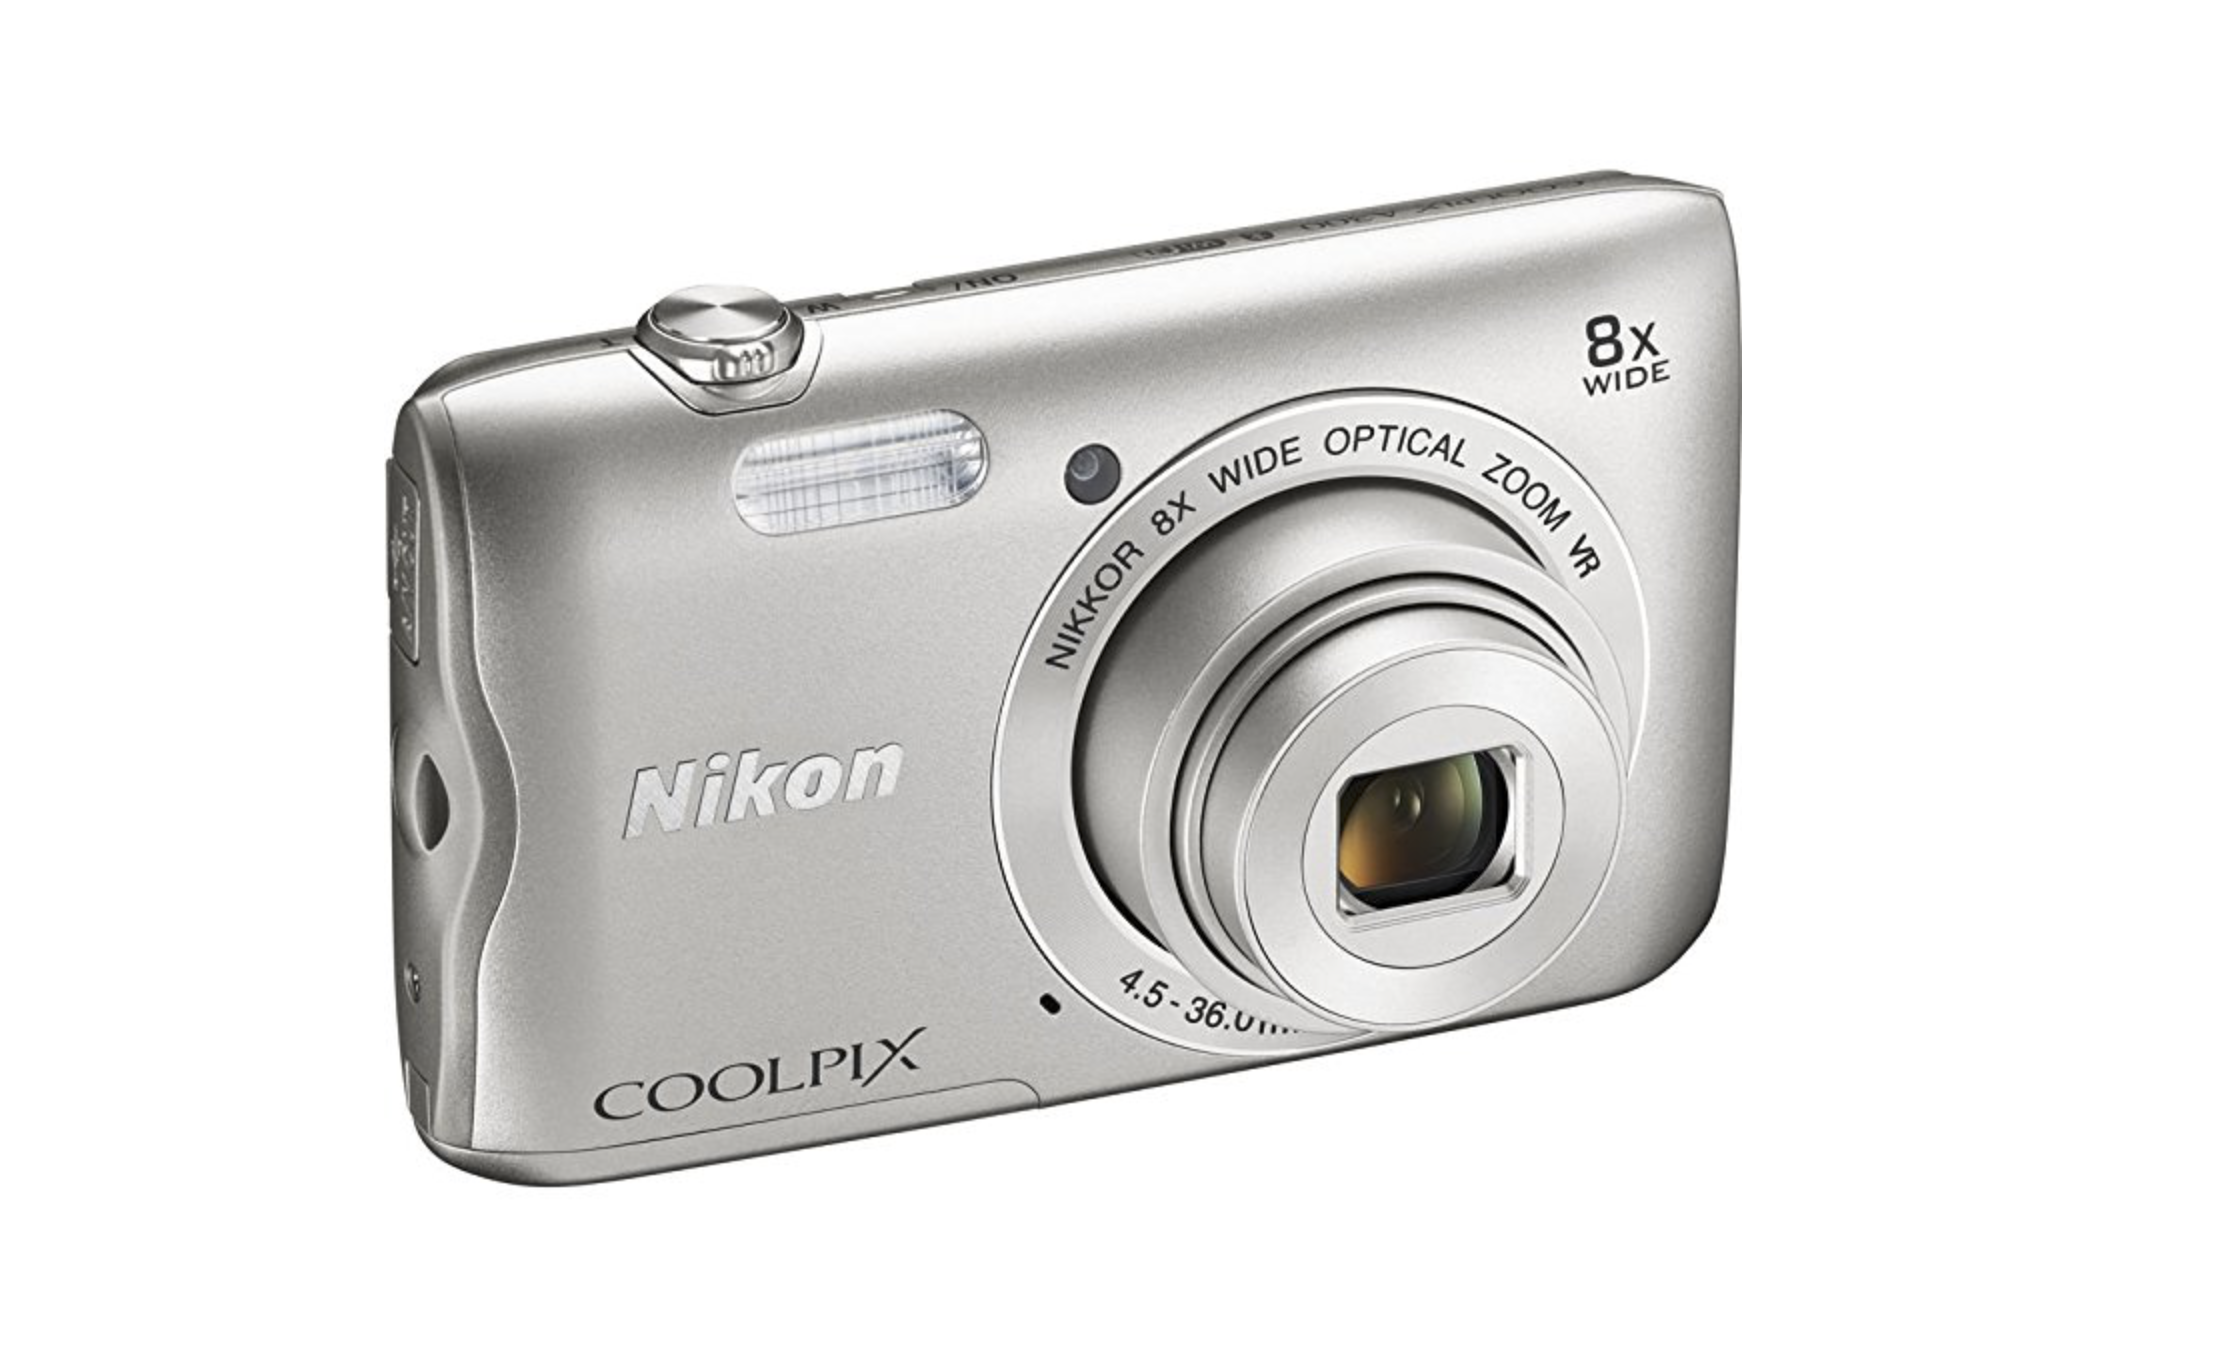 silver point and shoot camera for kids